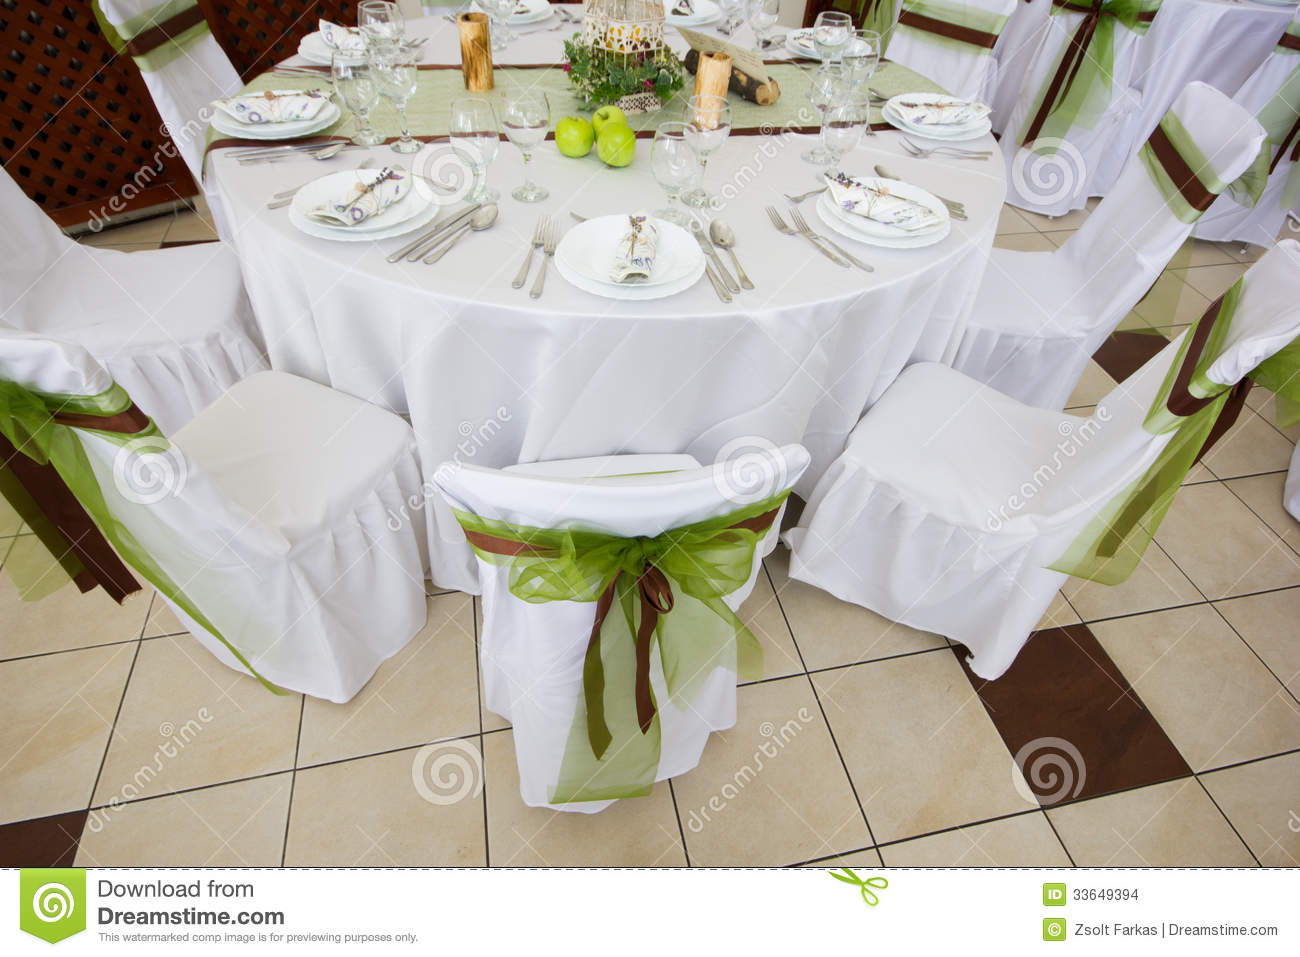 Interesting Wedding Table and Chair Decorations Images Decors – Dievoon